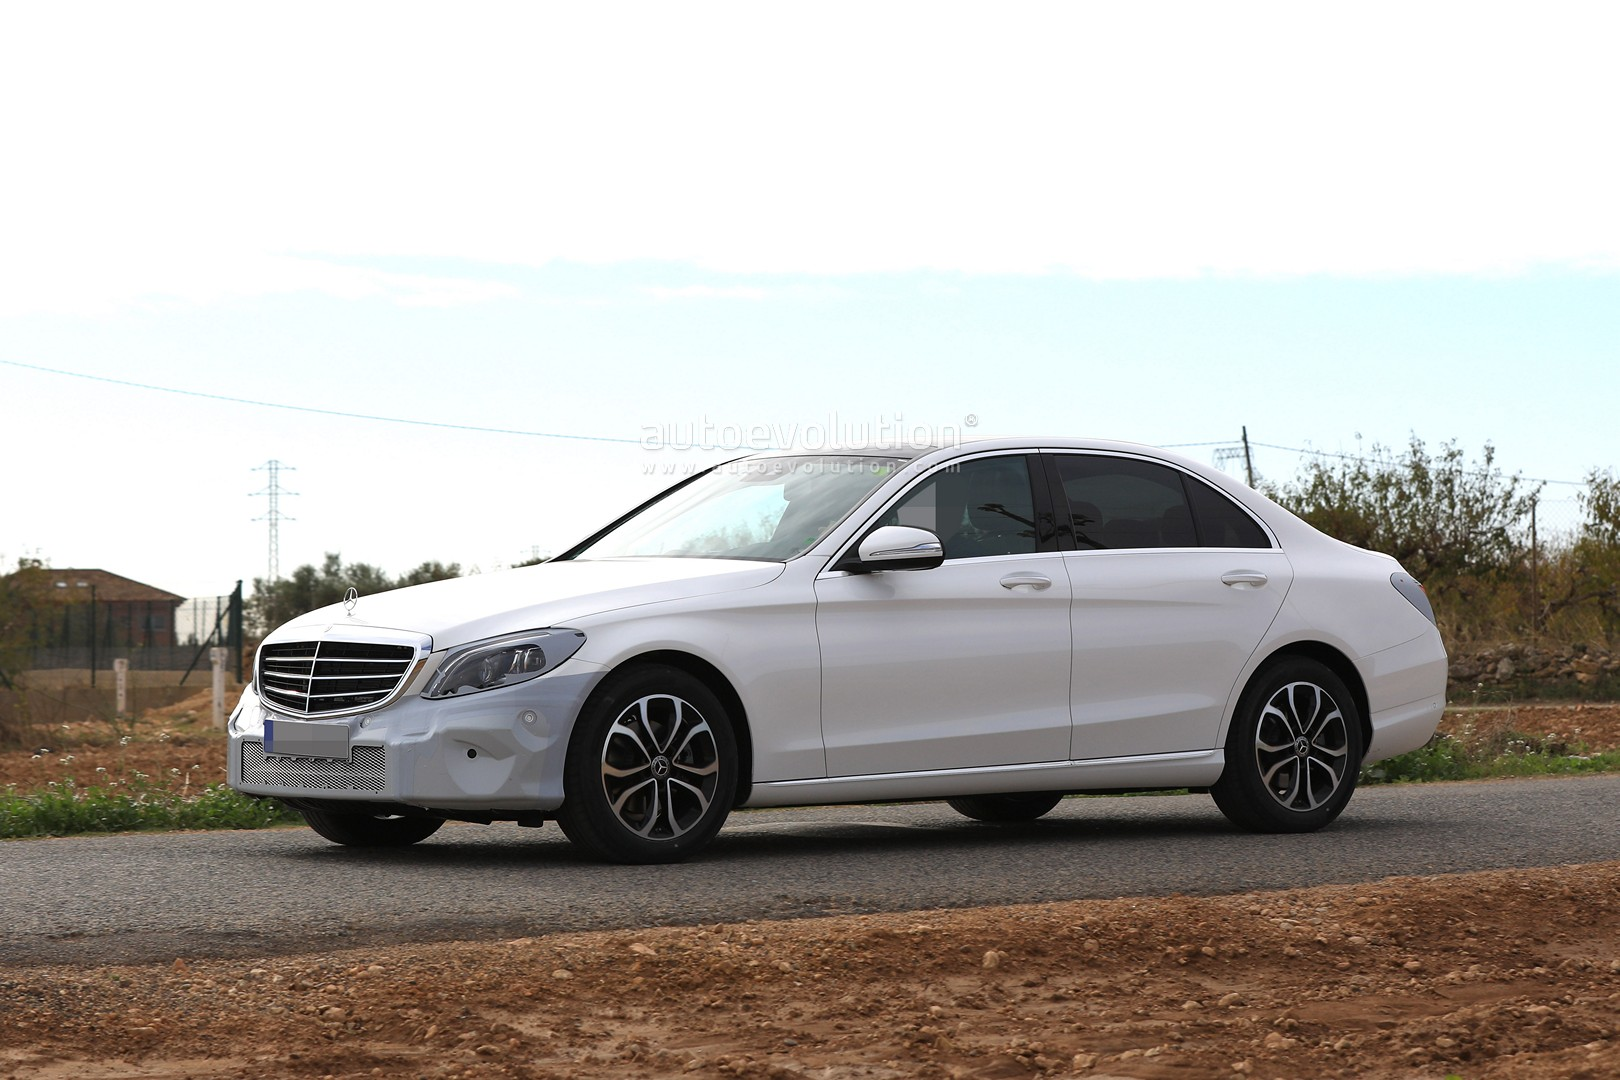 2018 mercedes c class facelift spied without camouflage. Black Bedroom Furniture Sets. Home Design Ideas